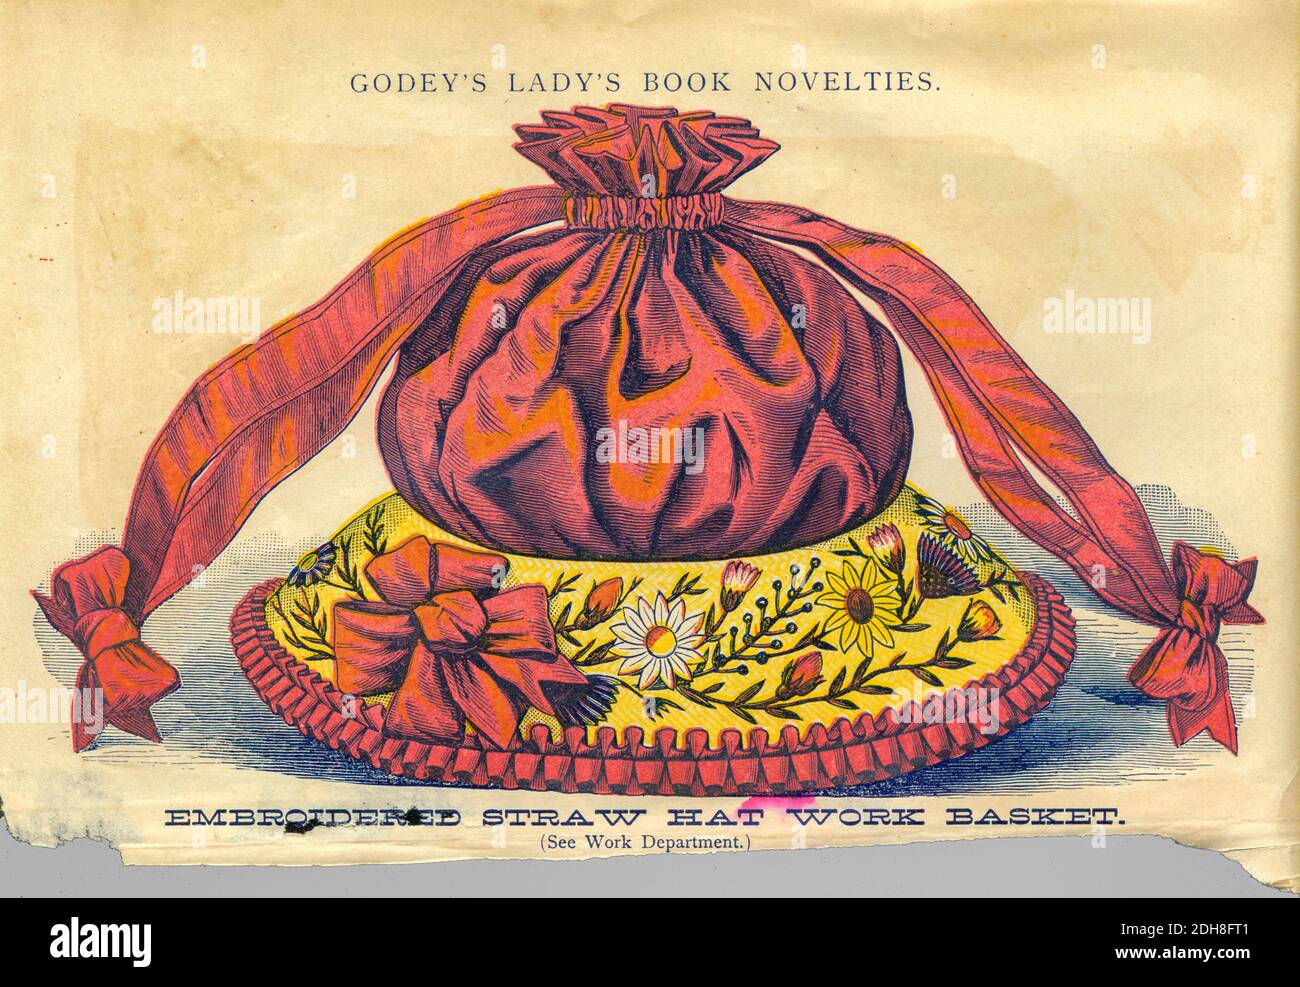 Embroidered straw hat work basketFrom Godey's Lady's Book and Magazine, Vol 101 July to December 1880 published in Philadelphia Stock Photo